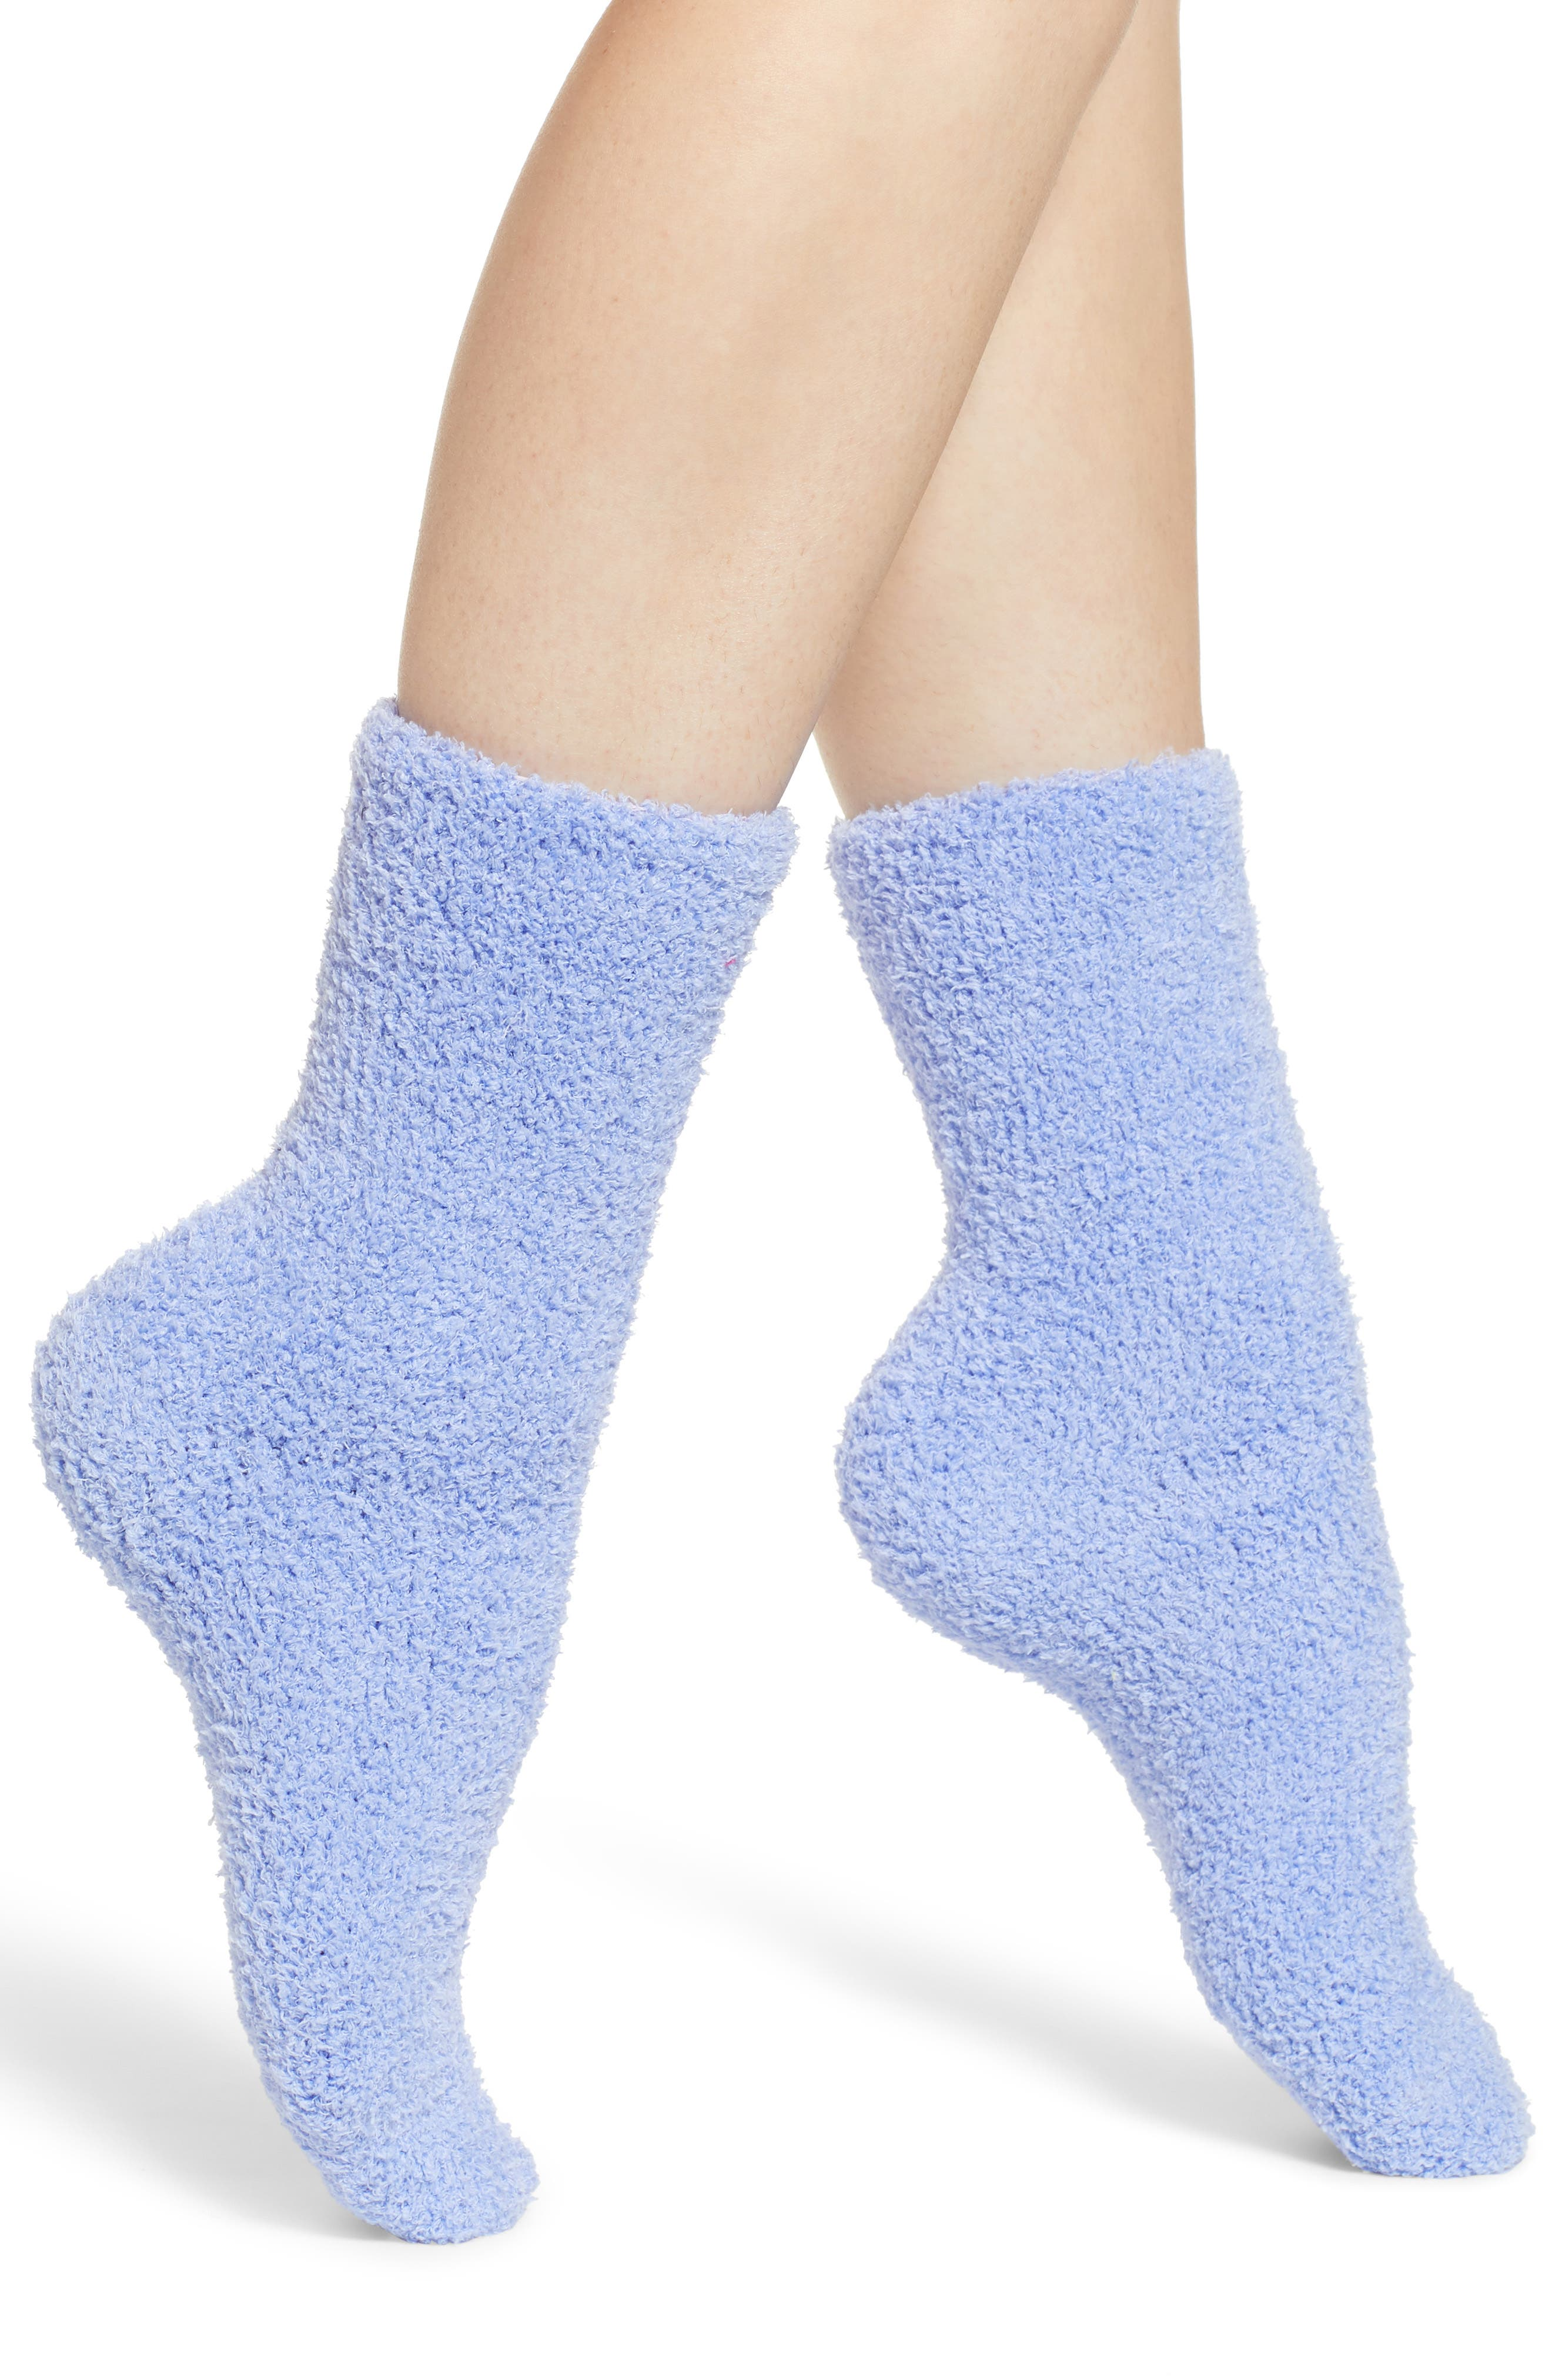 Butter Crew Socks,                             Main thumbnail 1, color,                             BLUE HYDRANGEA